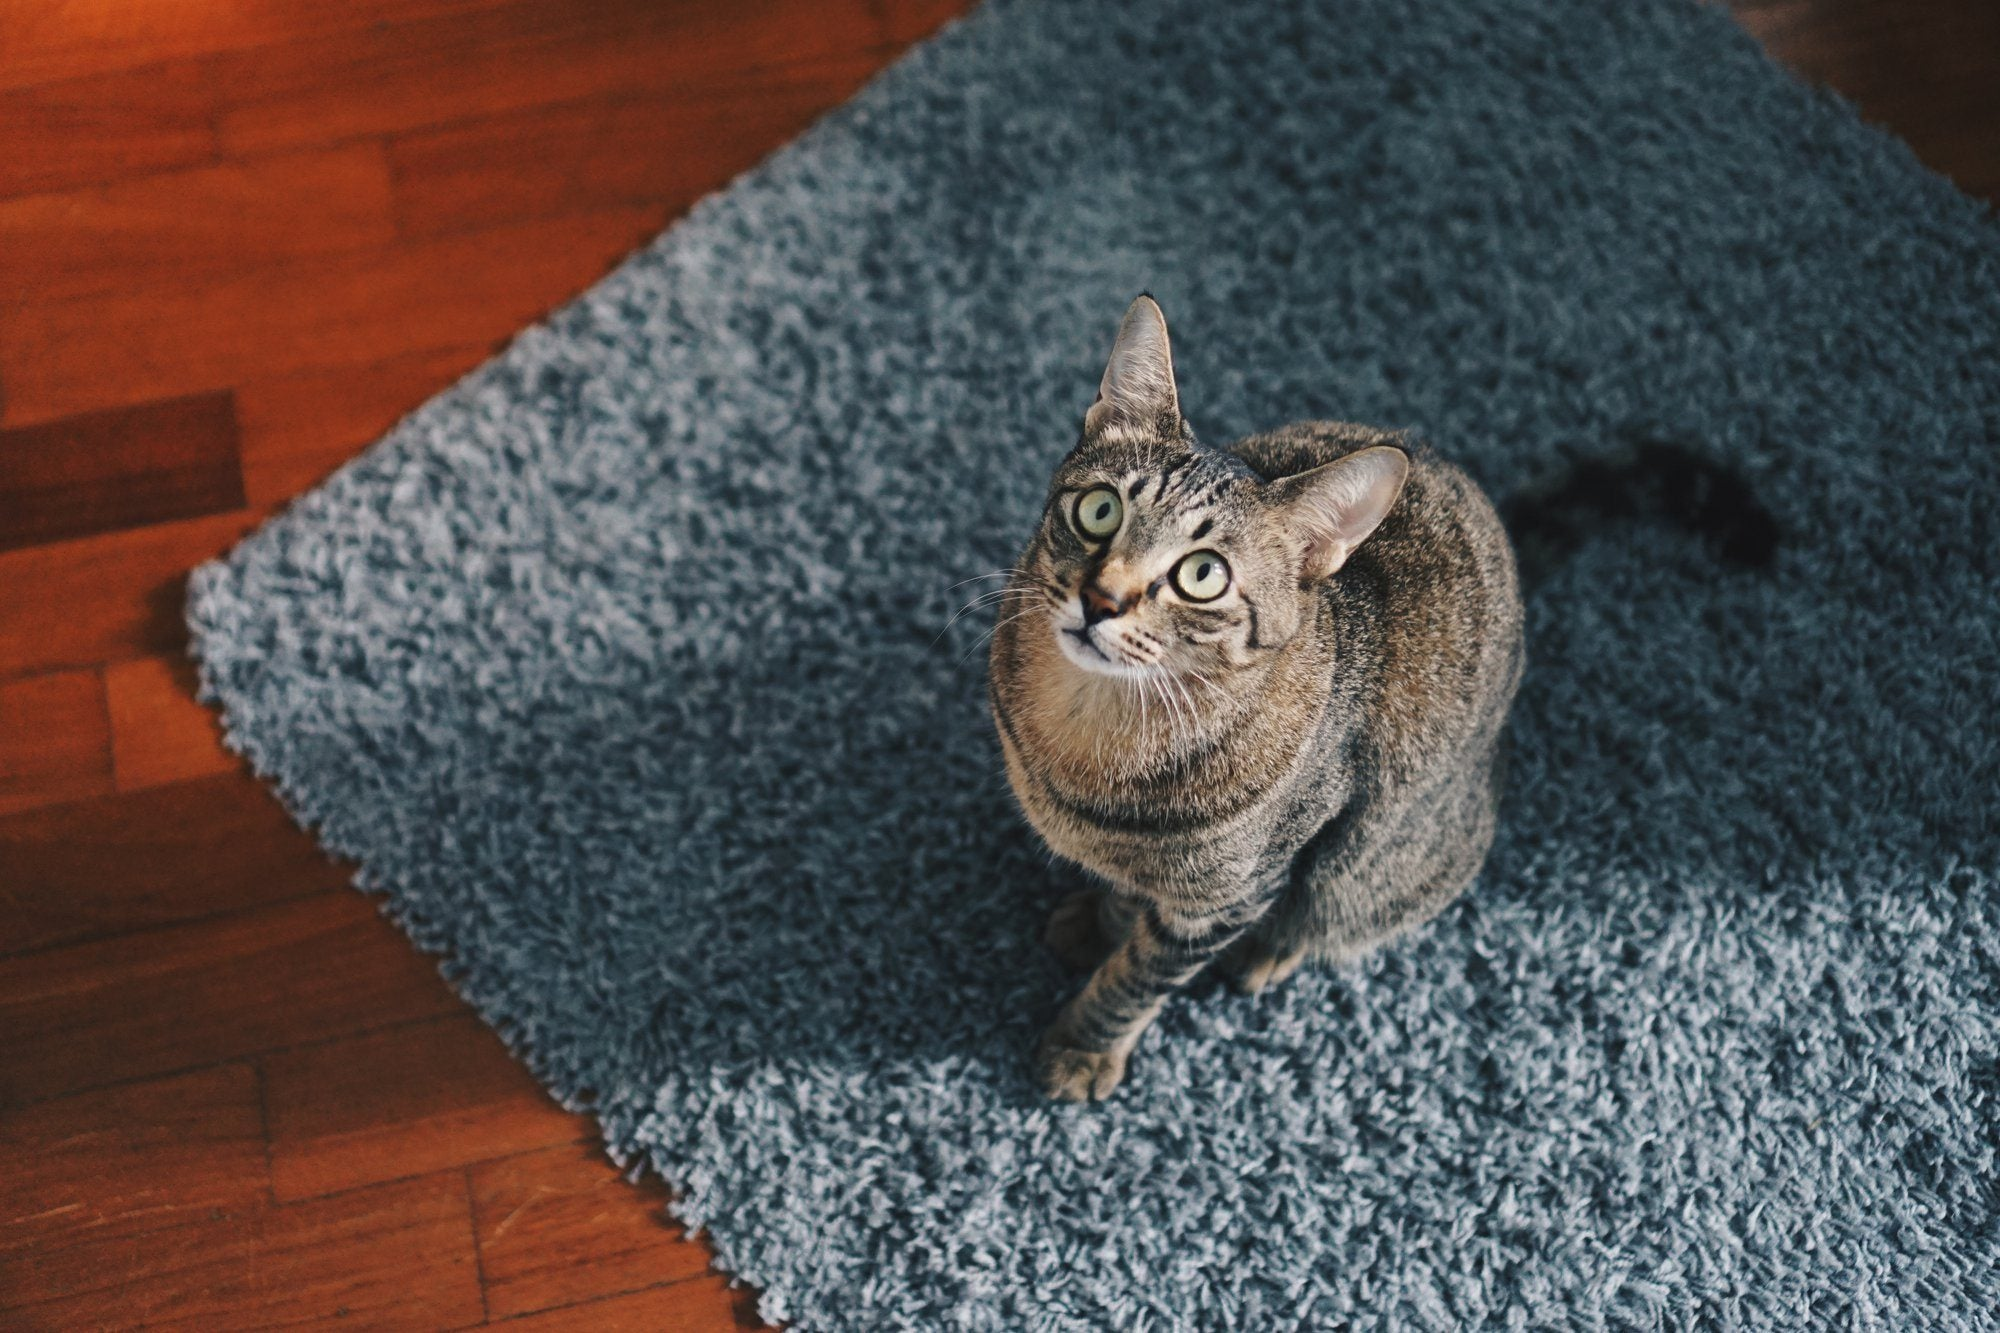 Floor Cleaning Products: What Every Cat Mom (and Dad) Should Know